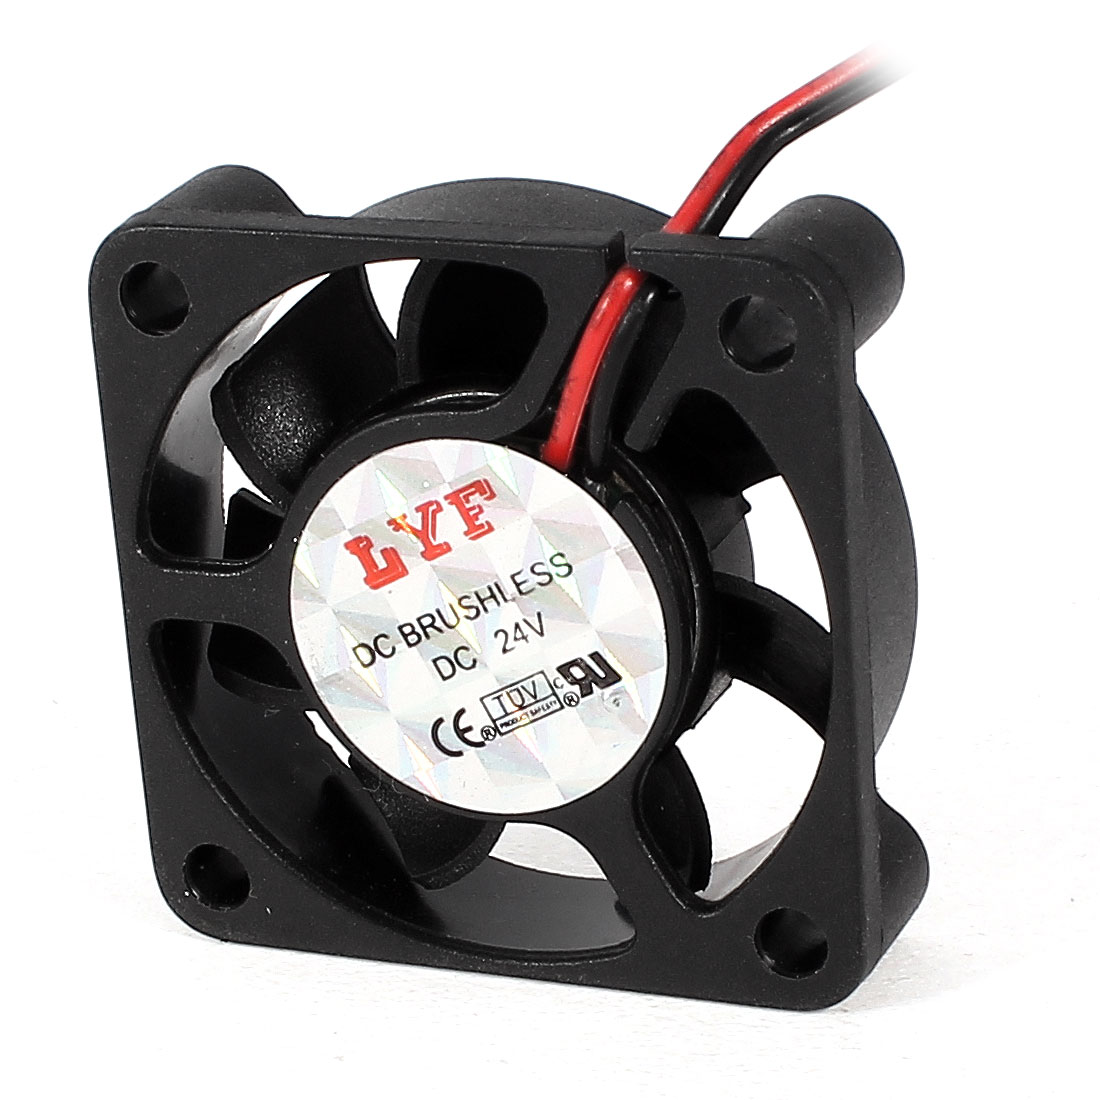 DC 24V 40mm x 10mm 2 Terminals Connector CPU Cooling Fan Cooler Black